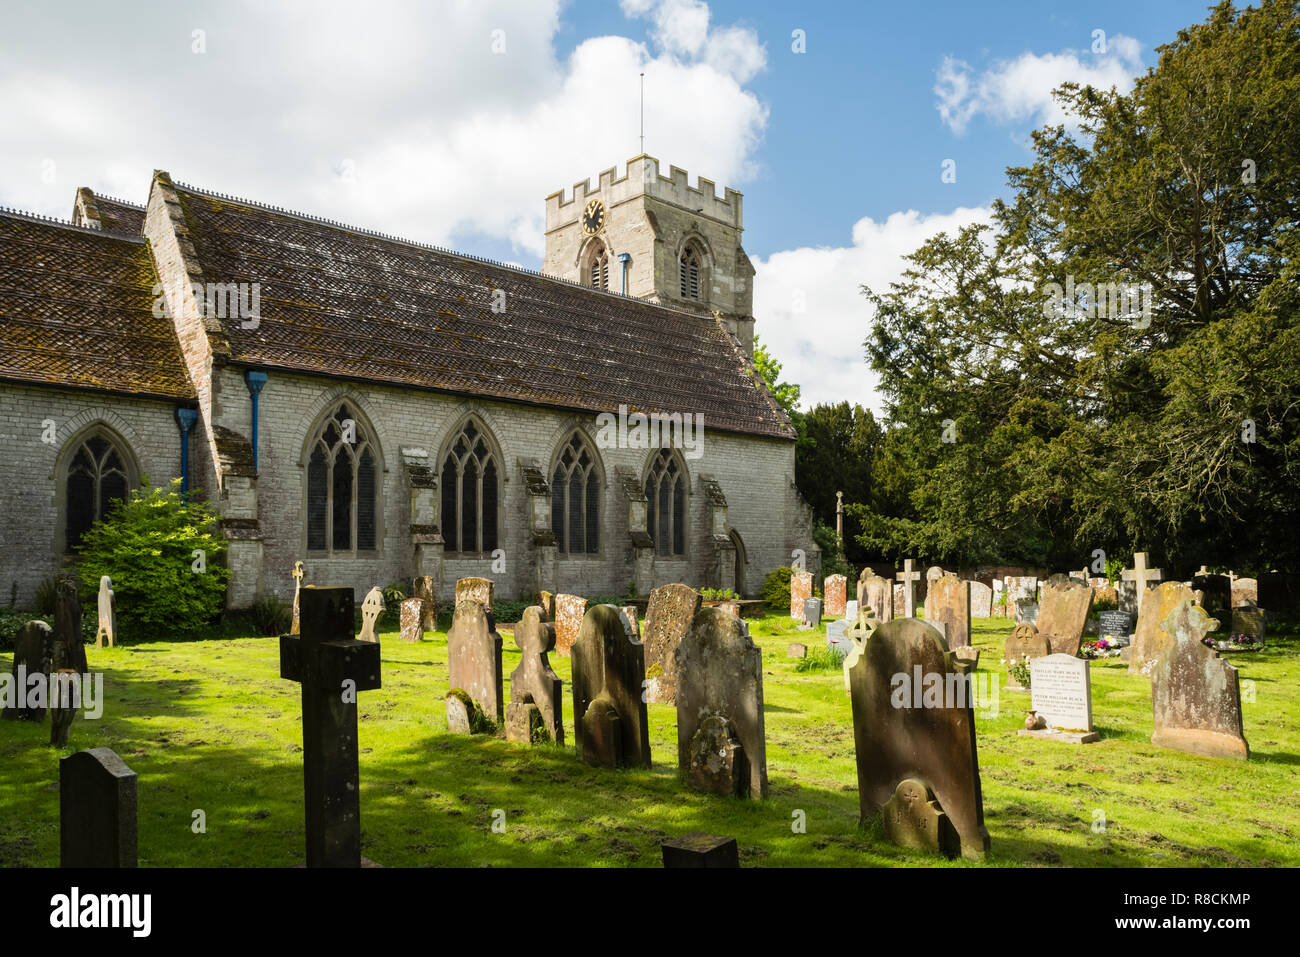 A quiet scene of medieval St. Peter's Church in the English village of  Wellesbourne, with the old gravestones in the foreground. - Stock Image